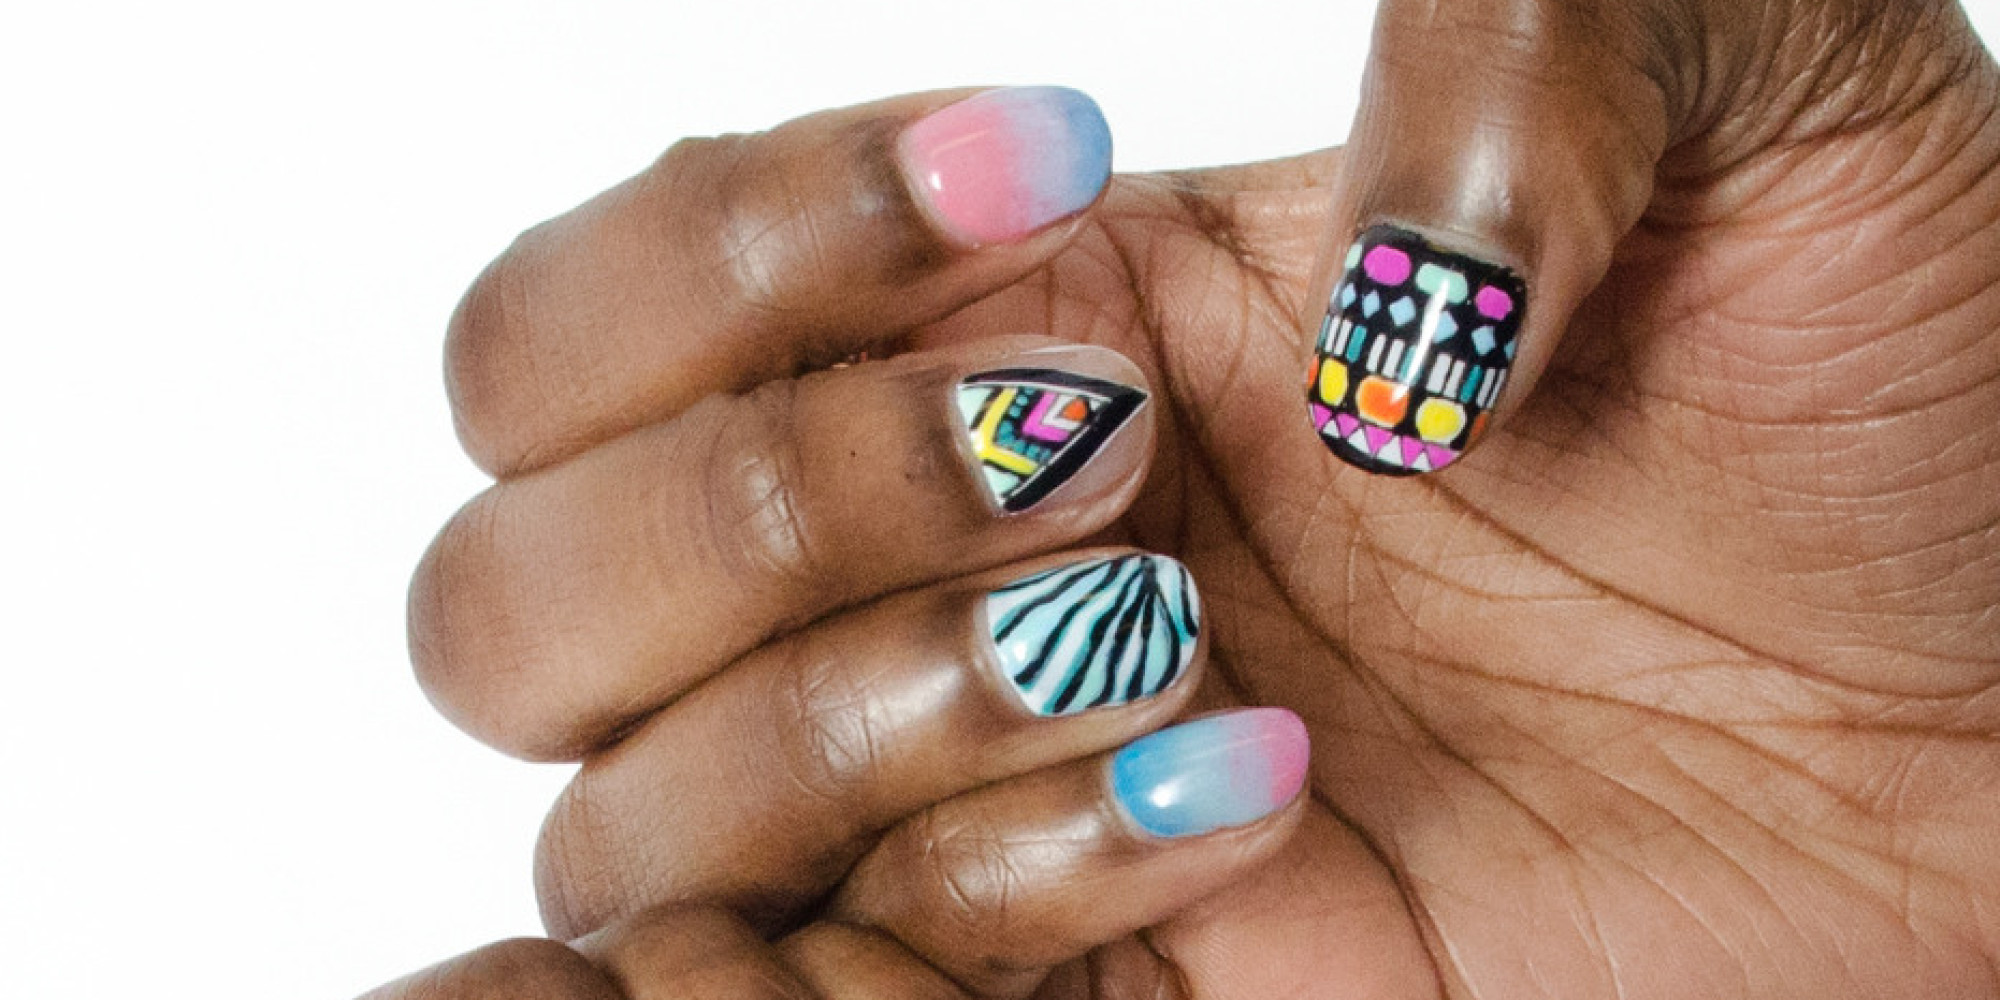 These Amazing Nail Art GIFs Will Brighten Any #ManicureMonday | HuffPost